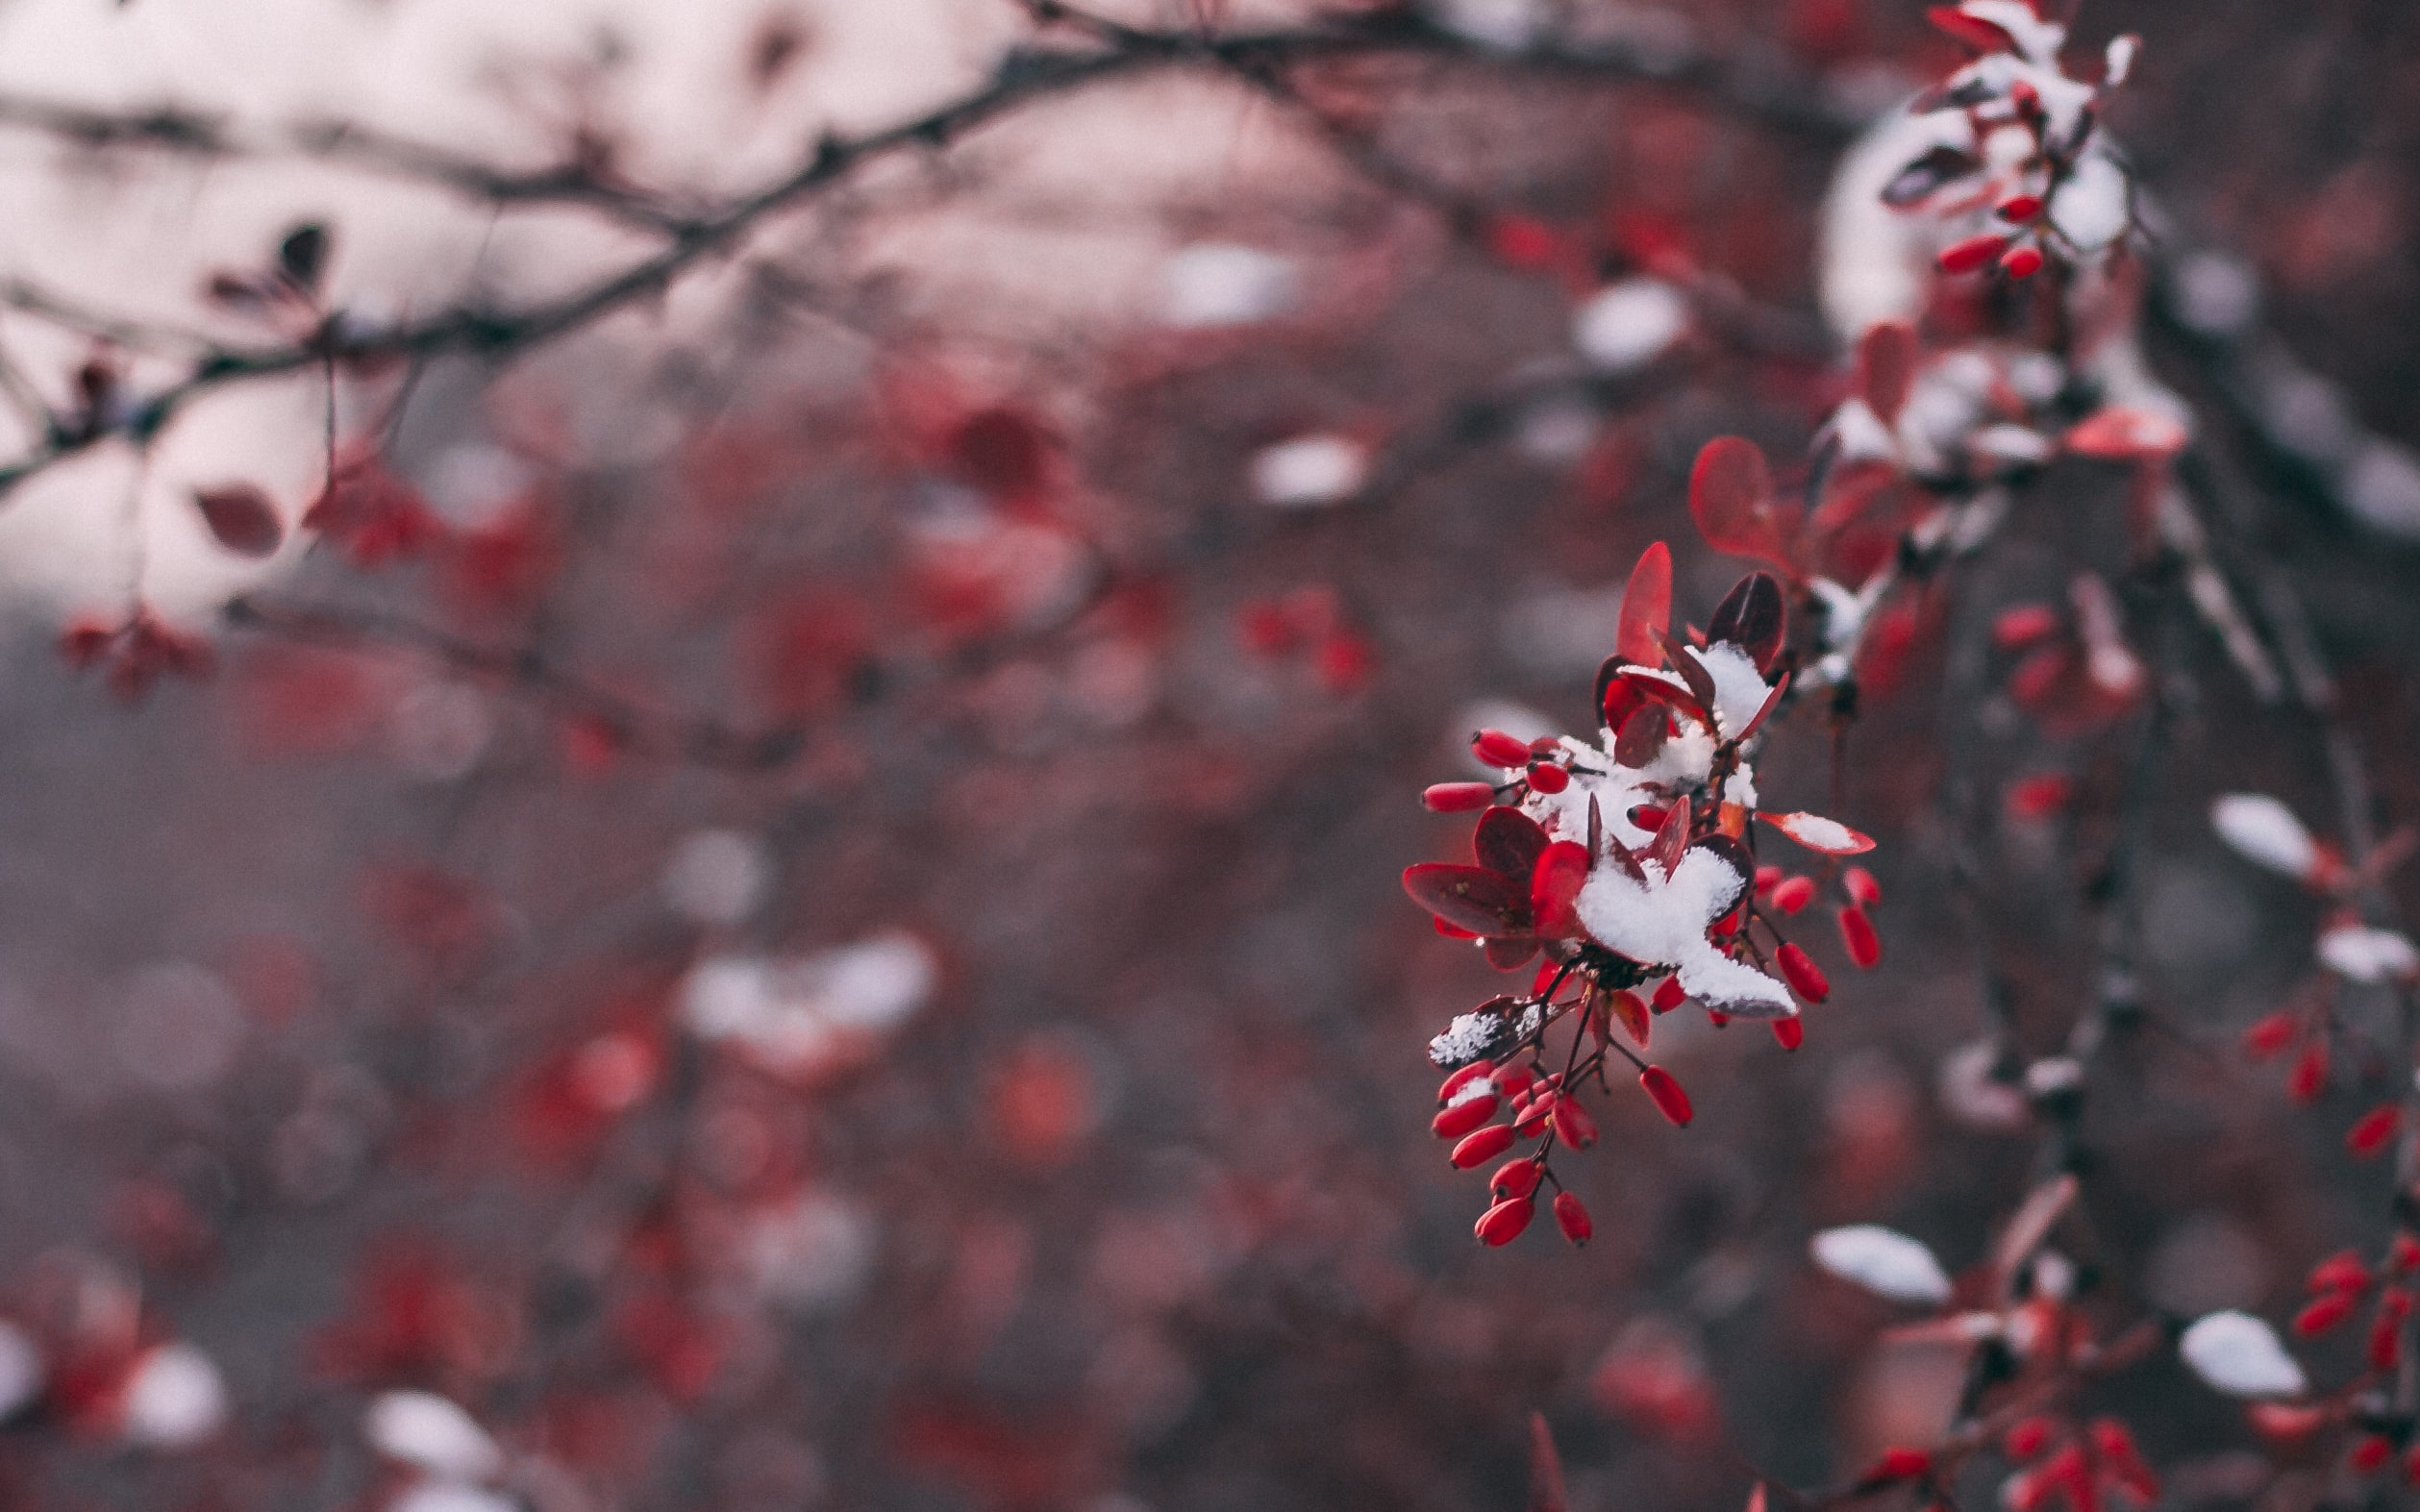 closeup photo of red and white flowering tree